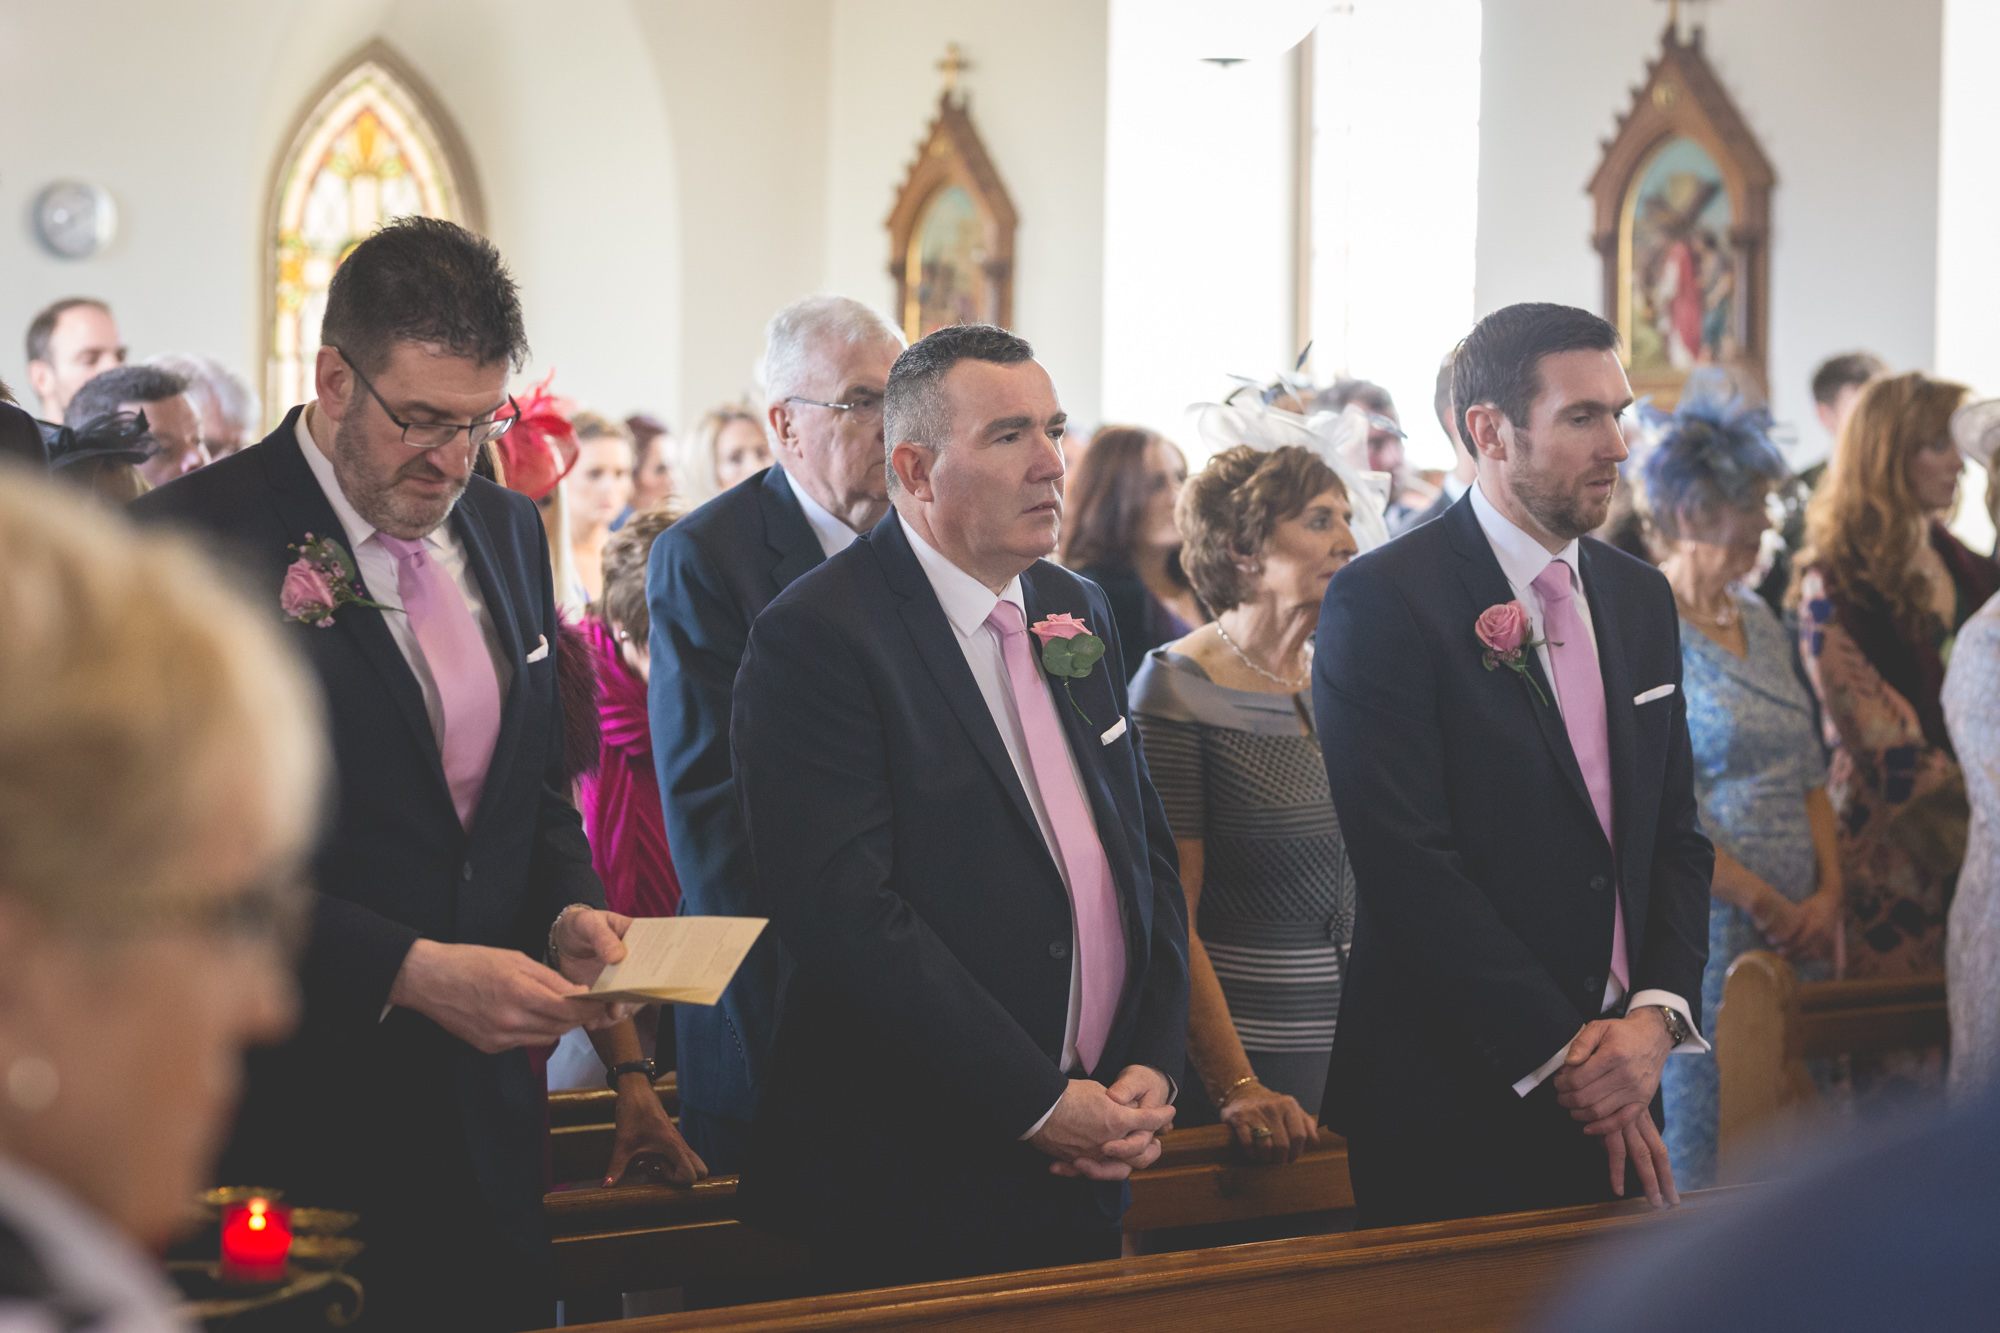 Francis&Oonagh-Ceremony-79.jpg